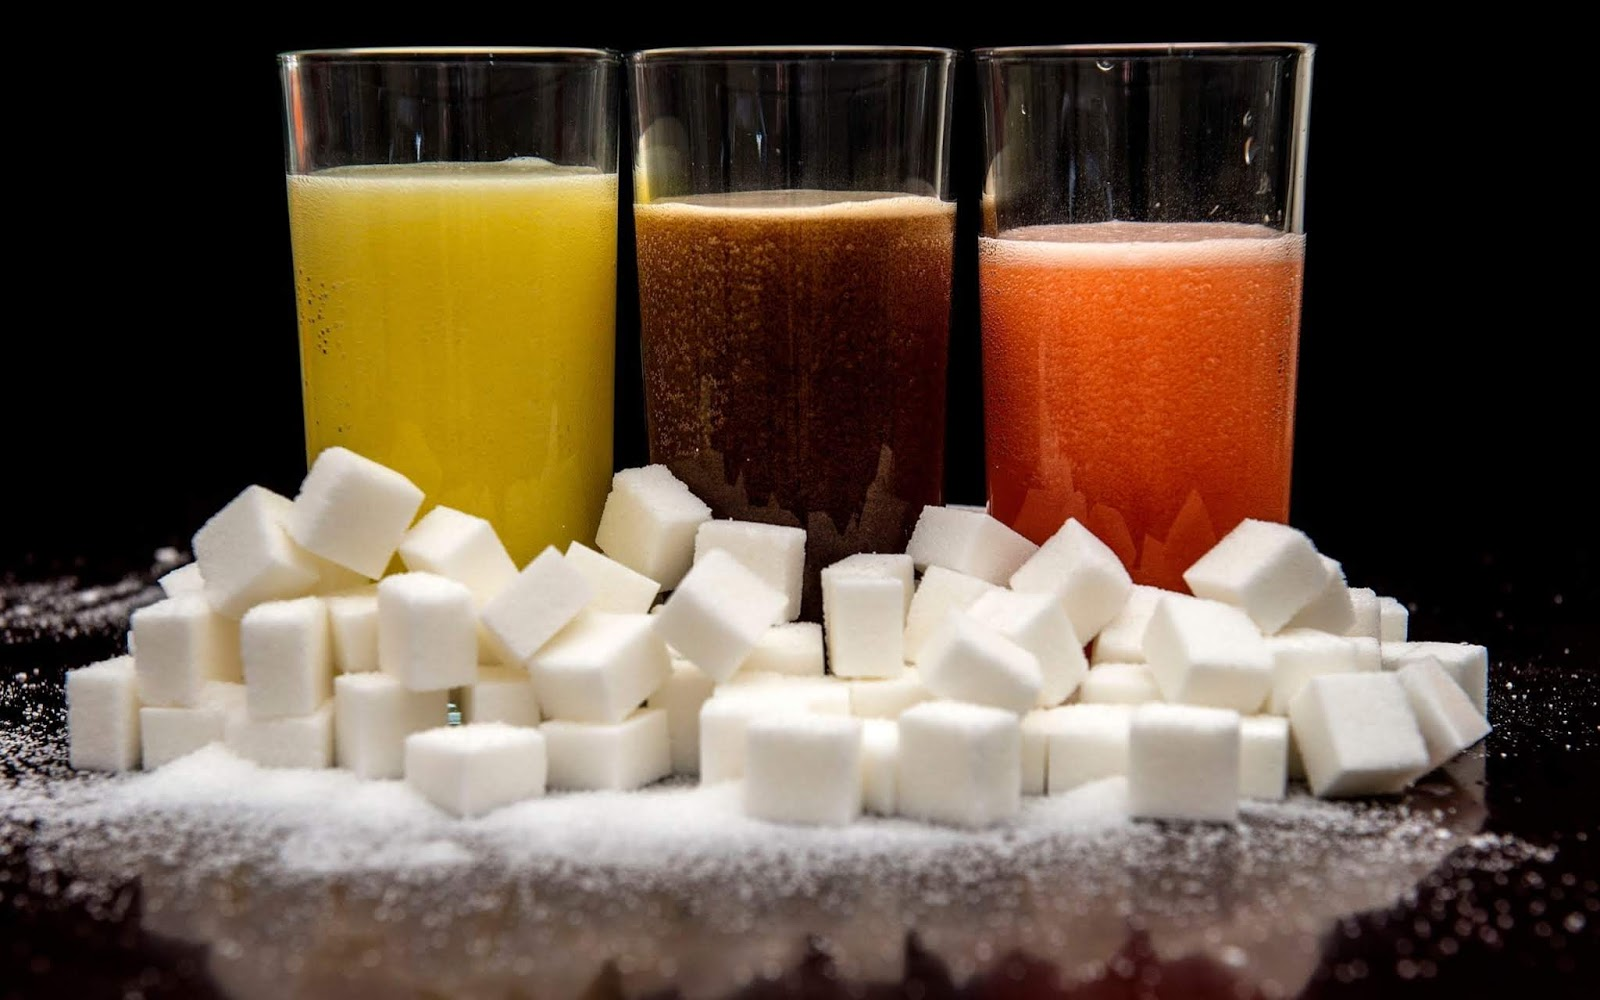 An online poll of The Straits Times readers shows a total ban on pre-packed high-sugar drinks was the top pick.